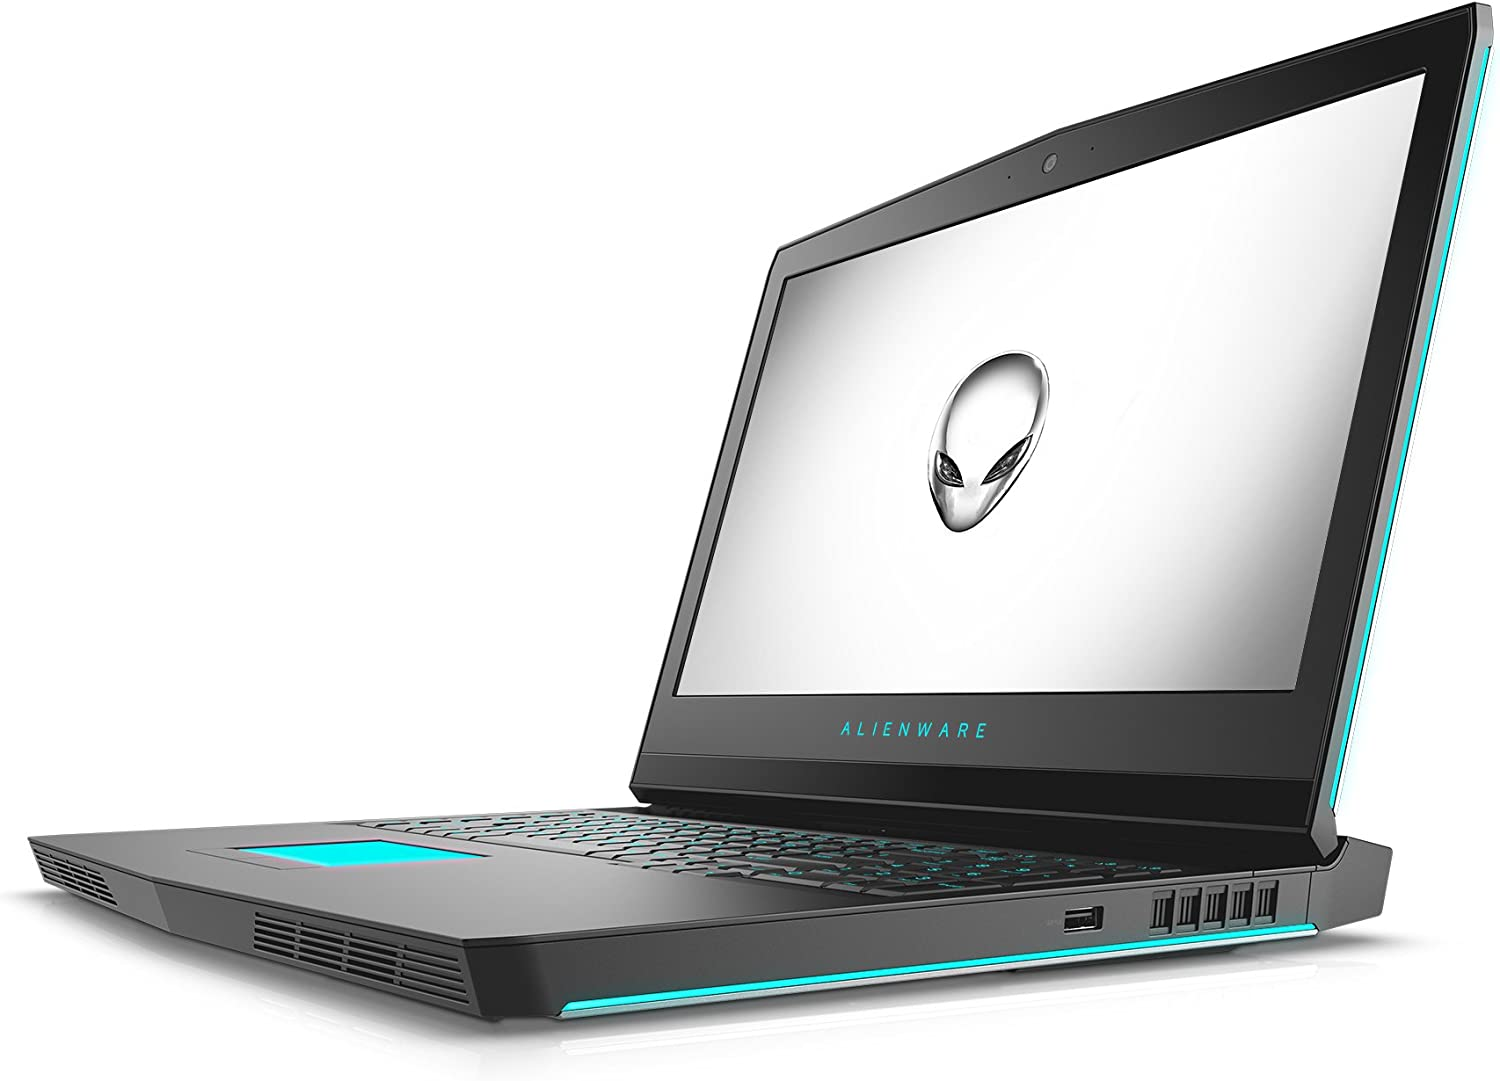 "Alienware AW17R4-7345SLV-PUS 17"" Laptop (7th Generation Intel Core i7, 16GB RAM, 1TB HDD, Silver) VR Ready with NVIDIA GTX 1070"